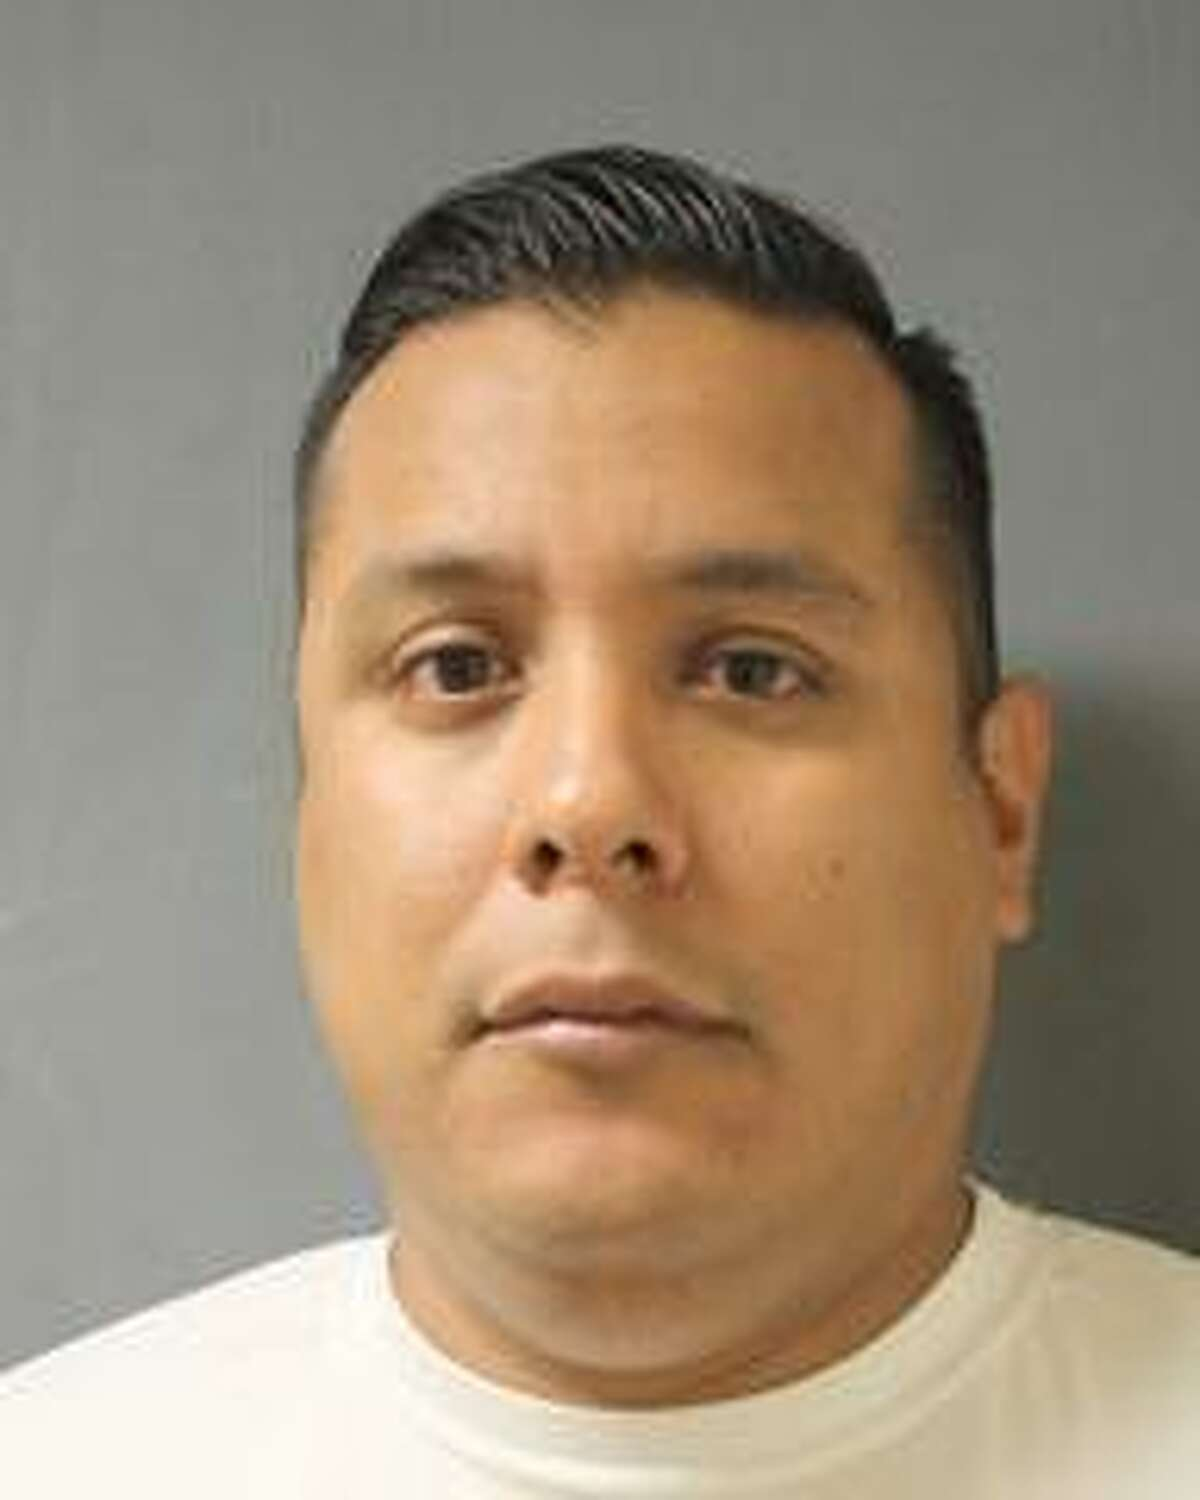 Sgt. Marco Carrizales faces a first-degree felony charge alleging he assaulted another man while Sgt. Carrizales was working an off-duty security job. The incident occurred two years ago in Oct ober 2015. In May, at the conclusion of an Internal Affairs investigation into the incident, Sgt. Carrizales was disciplined with a 10-day suspension and a 180-day probationary period during which he was prohibited from working extra-duty jobs. He is now on administrative leave pending further consideration of his employment status in light of the indictment.